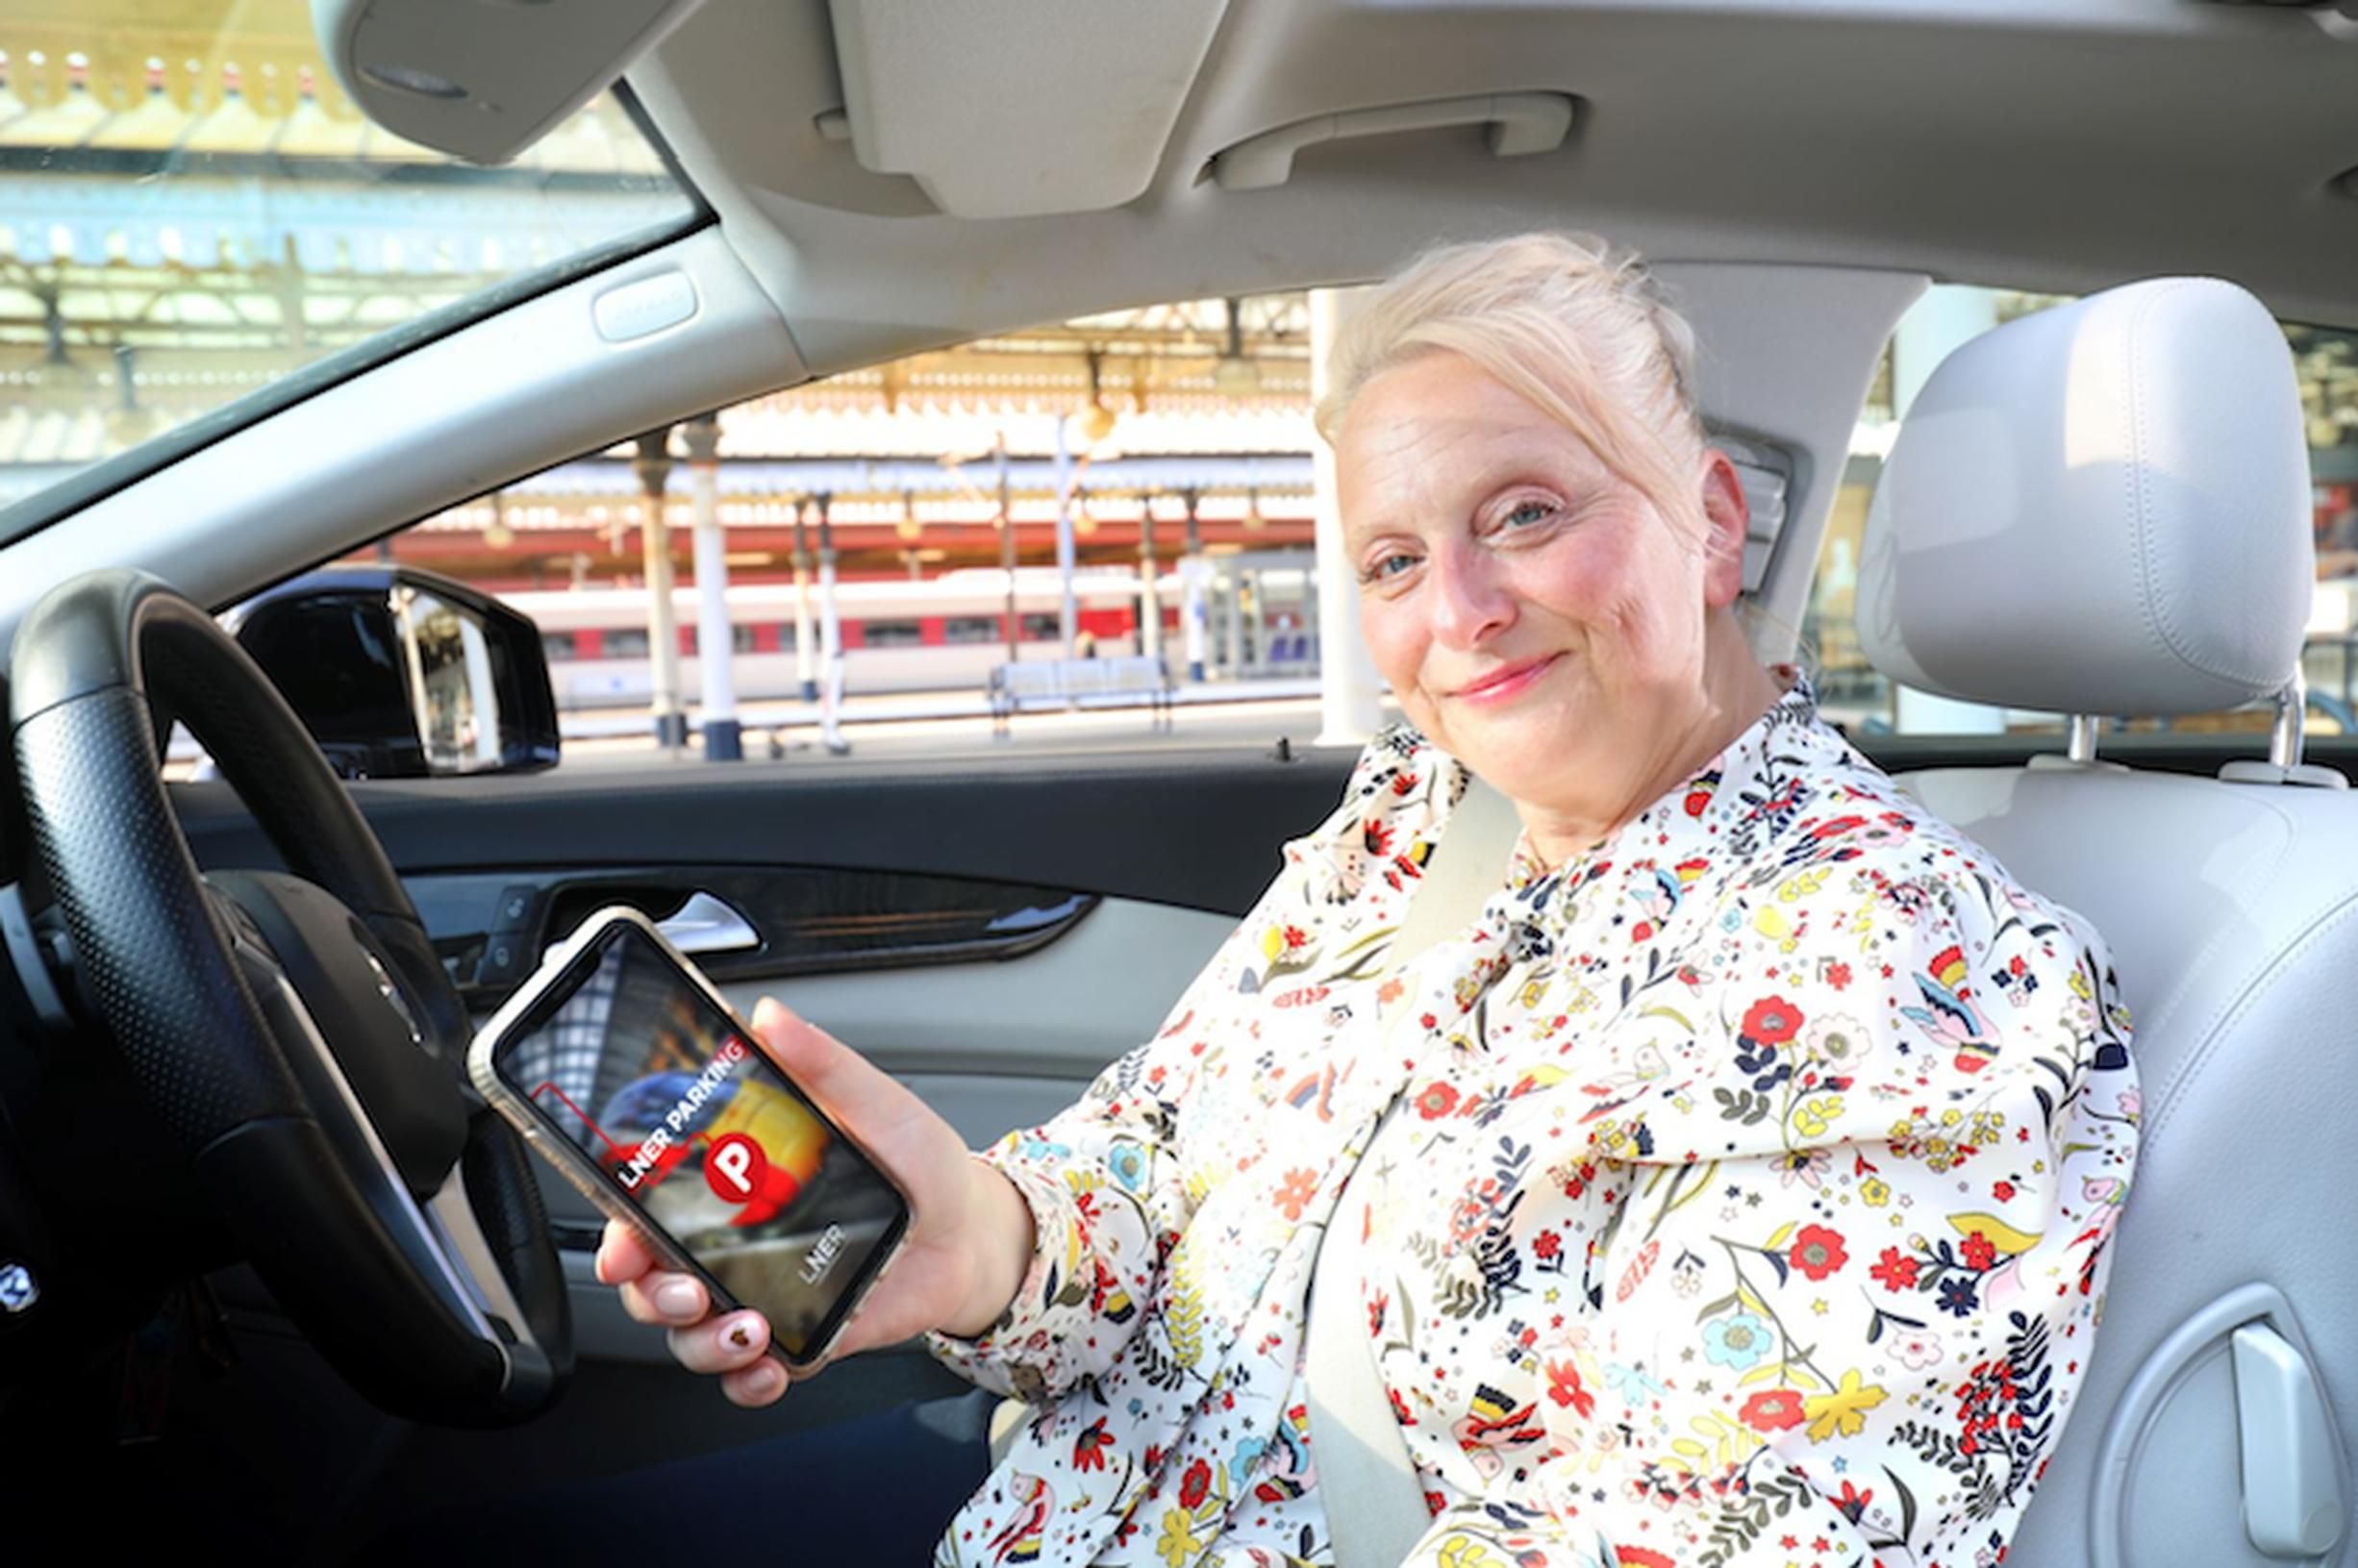 LNER introduces contactless parking payment